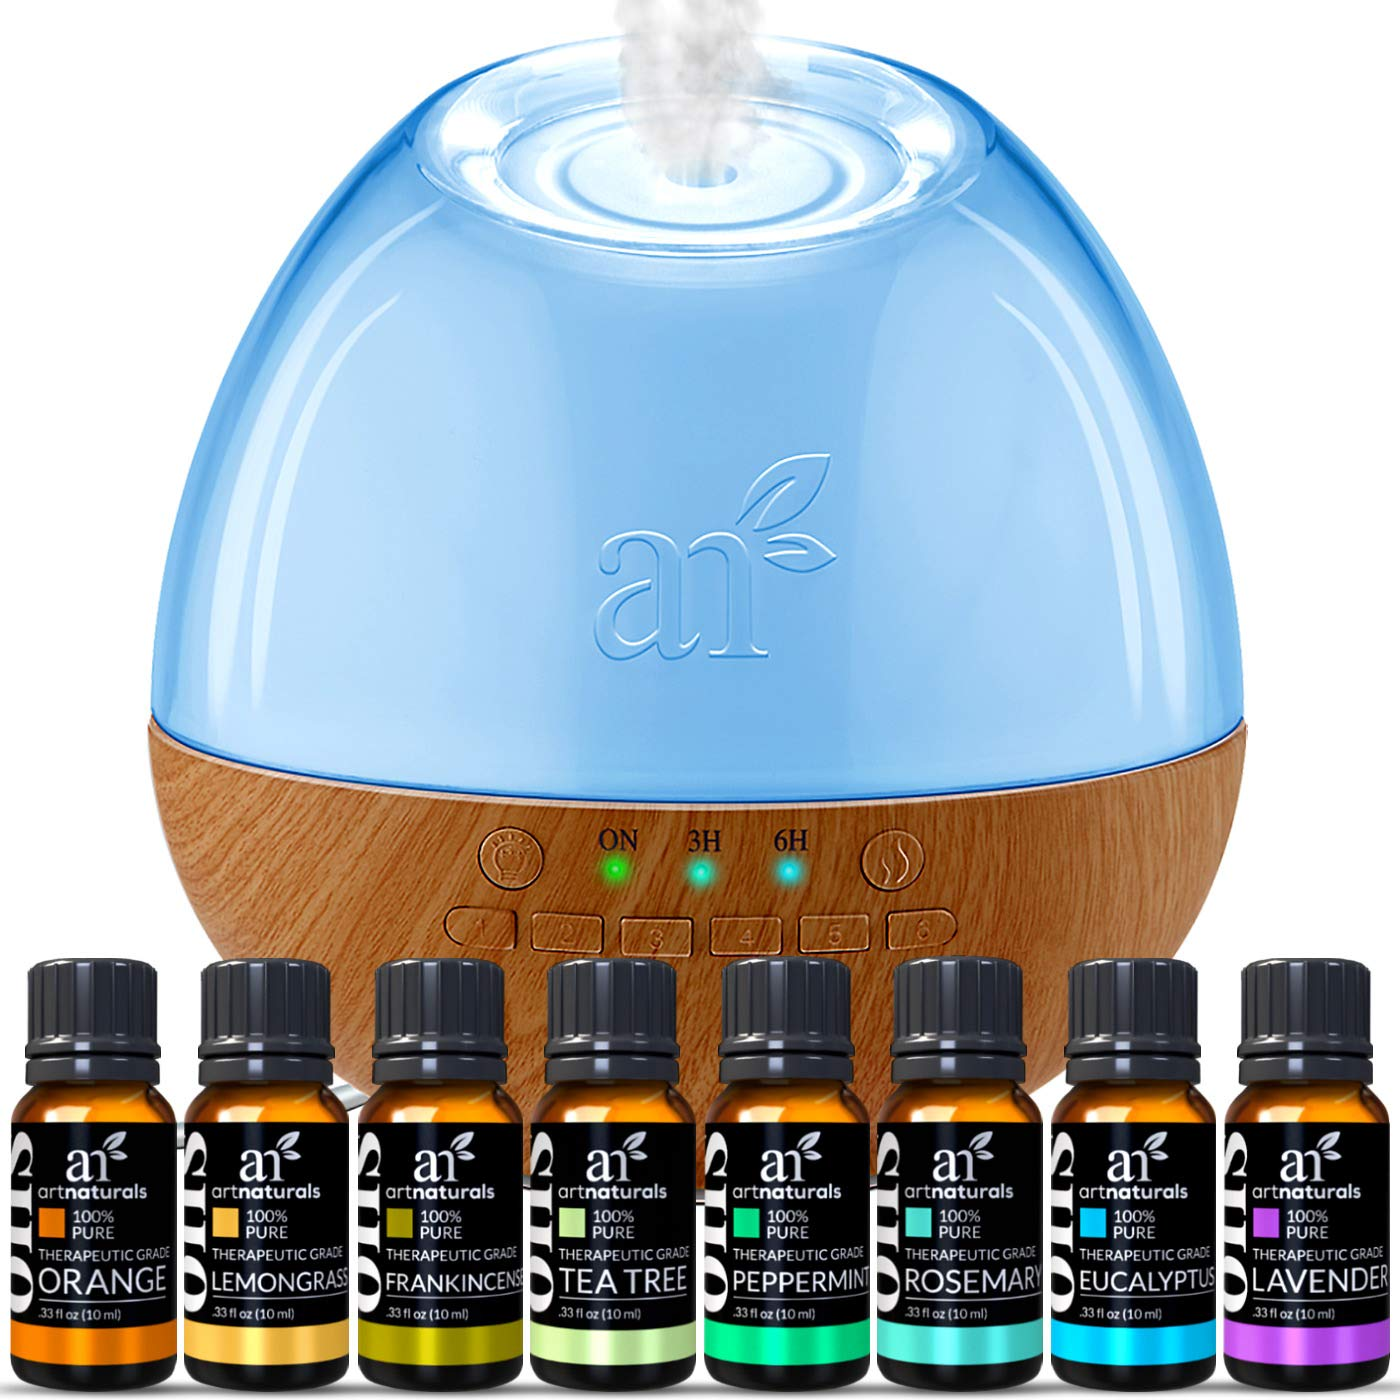 ArtNaturals Sound Machine Diffuser & Essential Oil Set - (300ml Tank & Top 8 Set) - 6 Calming Natural Sounds - Aromatherapy and White Noise for Relaxation and Sleeping - Baby, Kids, and Adults